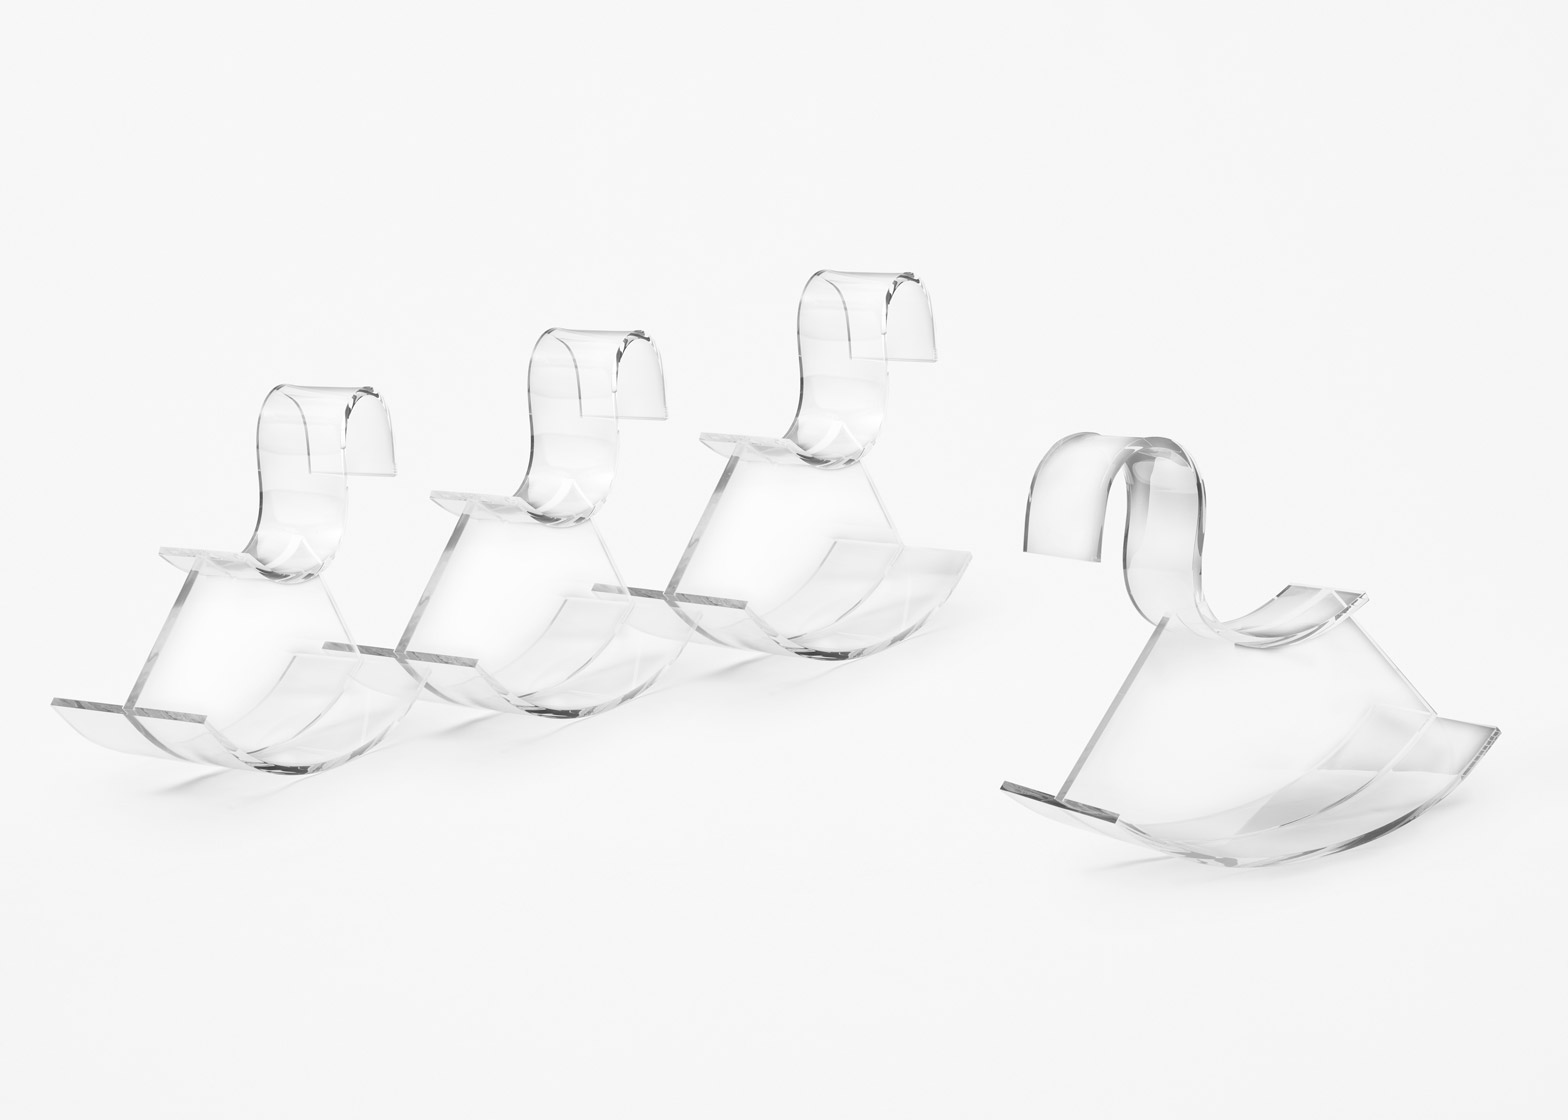 Nendo designs transparent rocking horse for Kartell